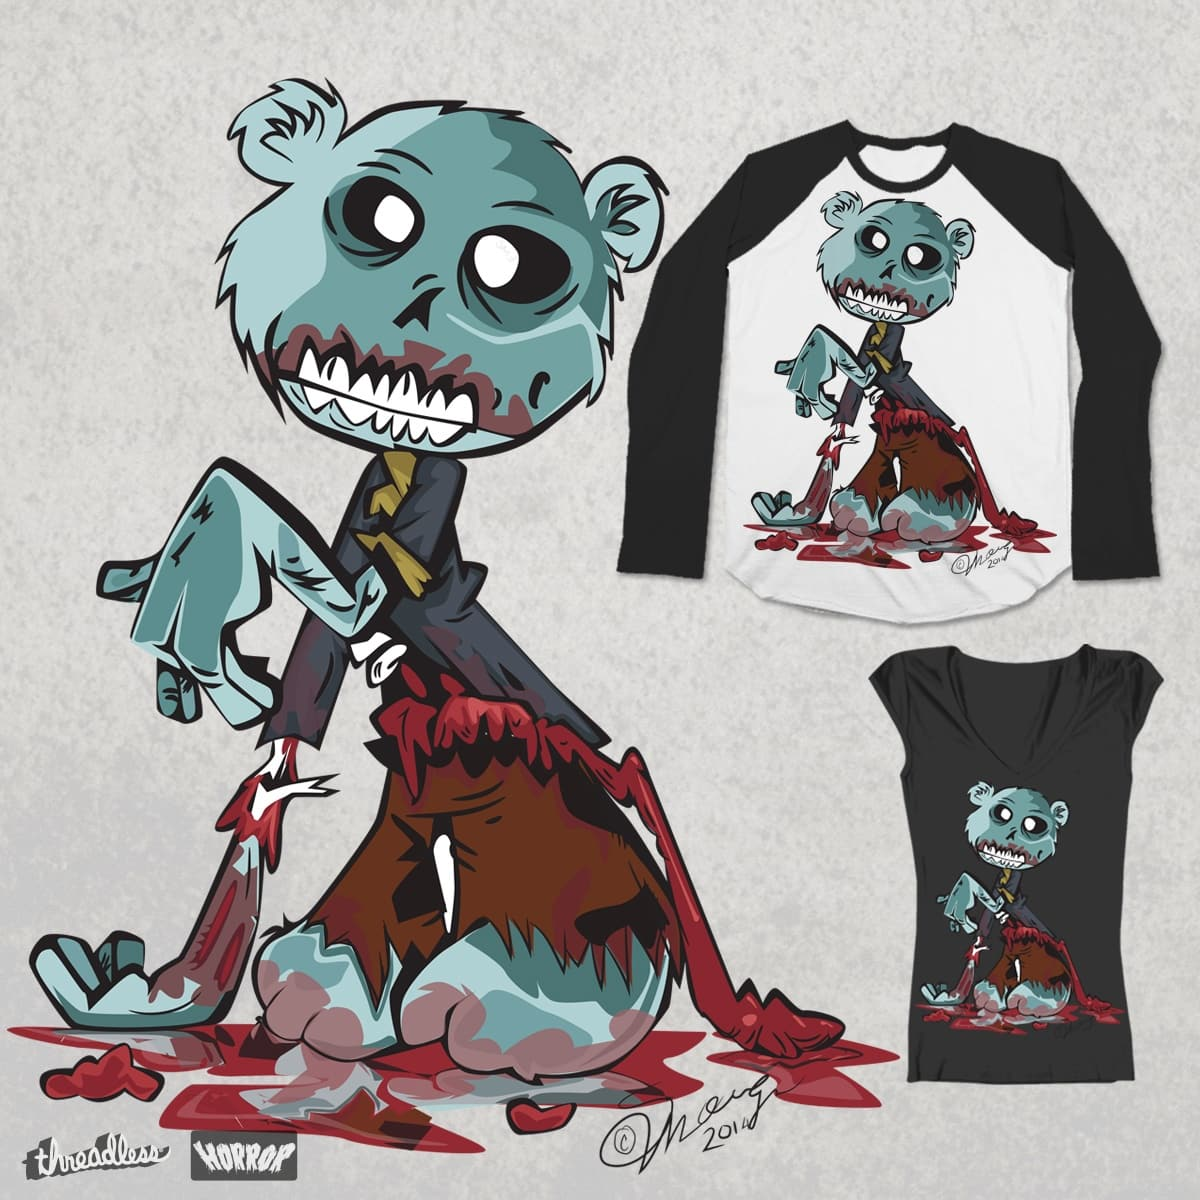 Lost His Stuffing  by stheartsiegirl on Threadless